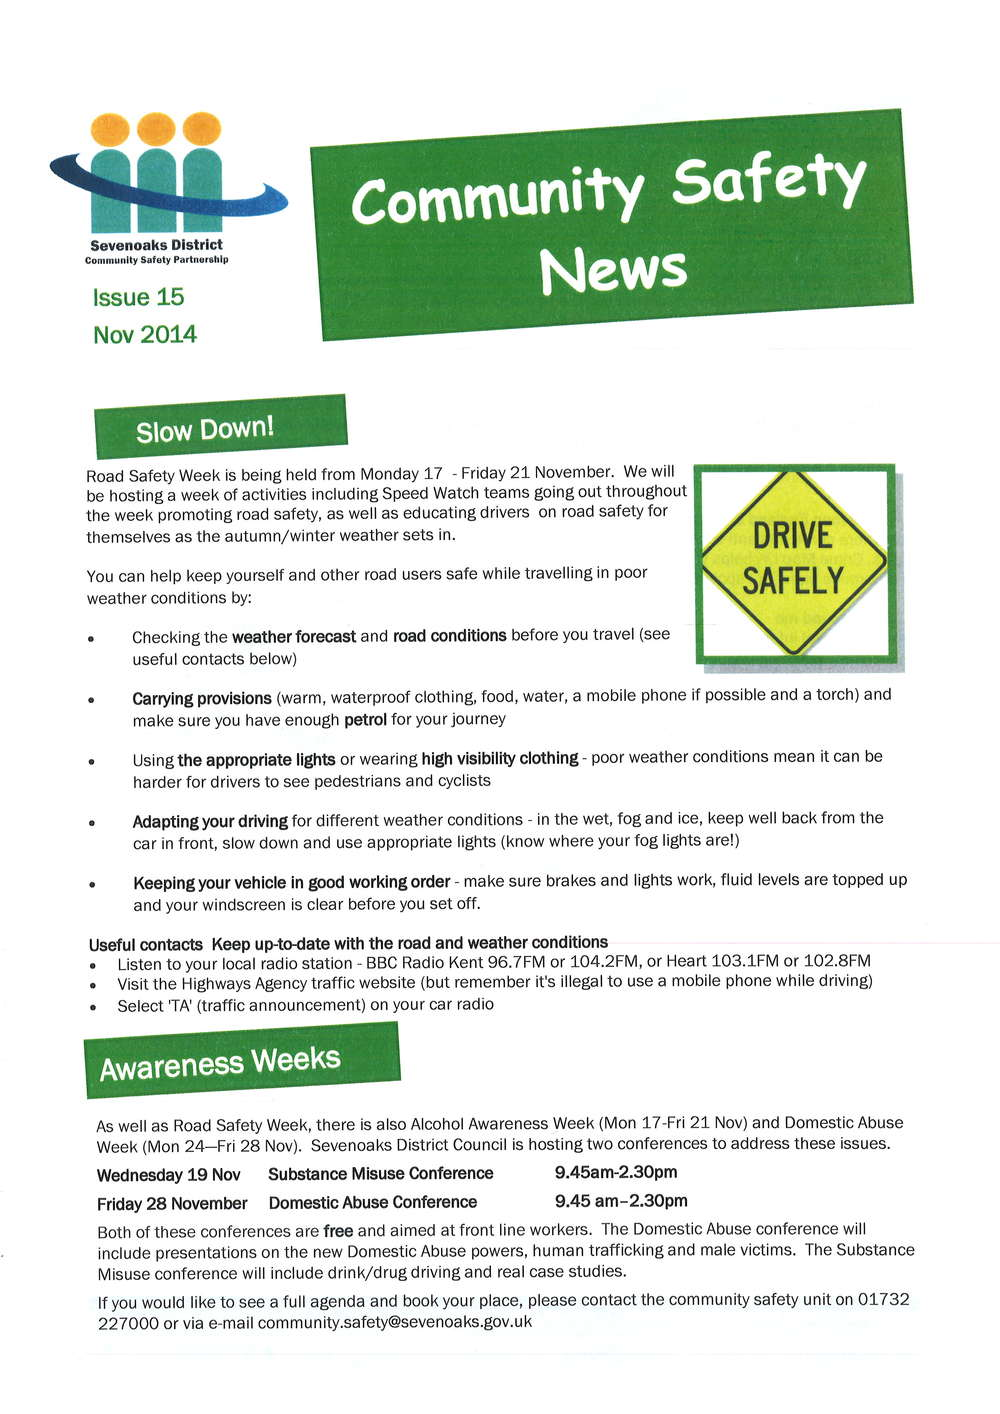 Community Safety News from Sevenoaks District Council